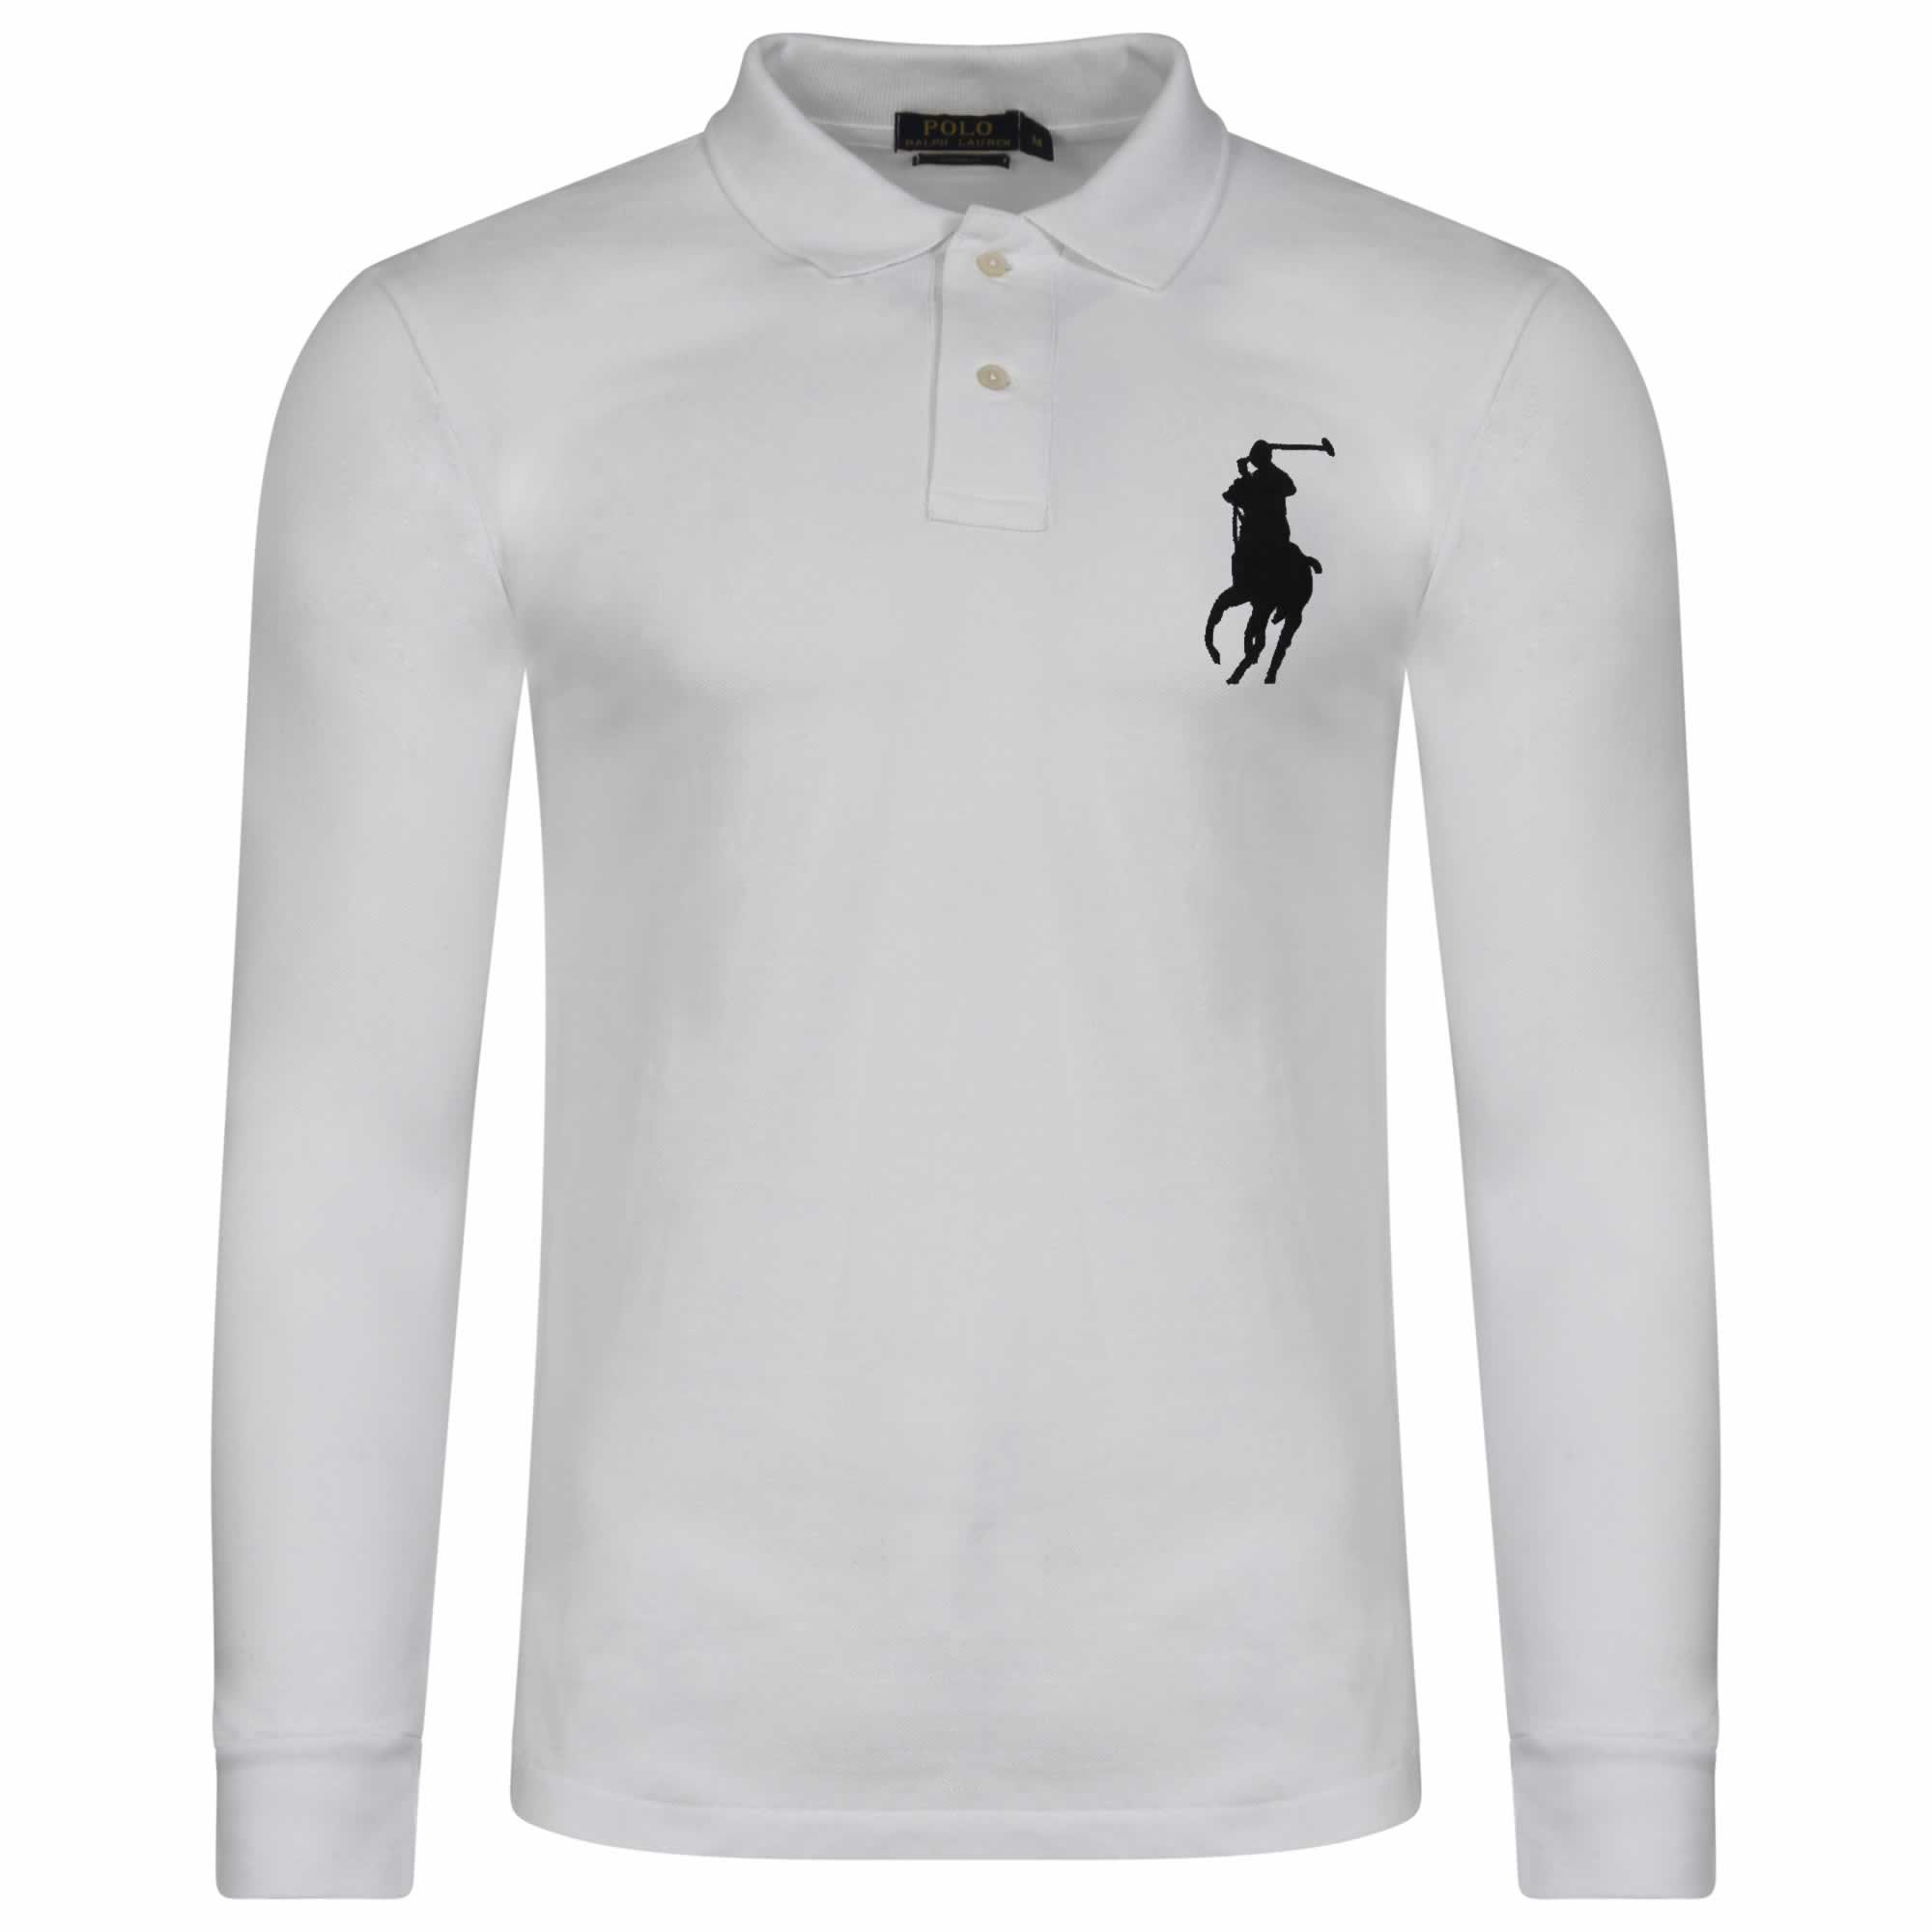 a12877b59617b4 Ralph Lauren Long Sleeve Big Pony. Polo Shirt. Custom Fit in White - INTOTO7